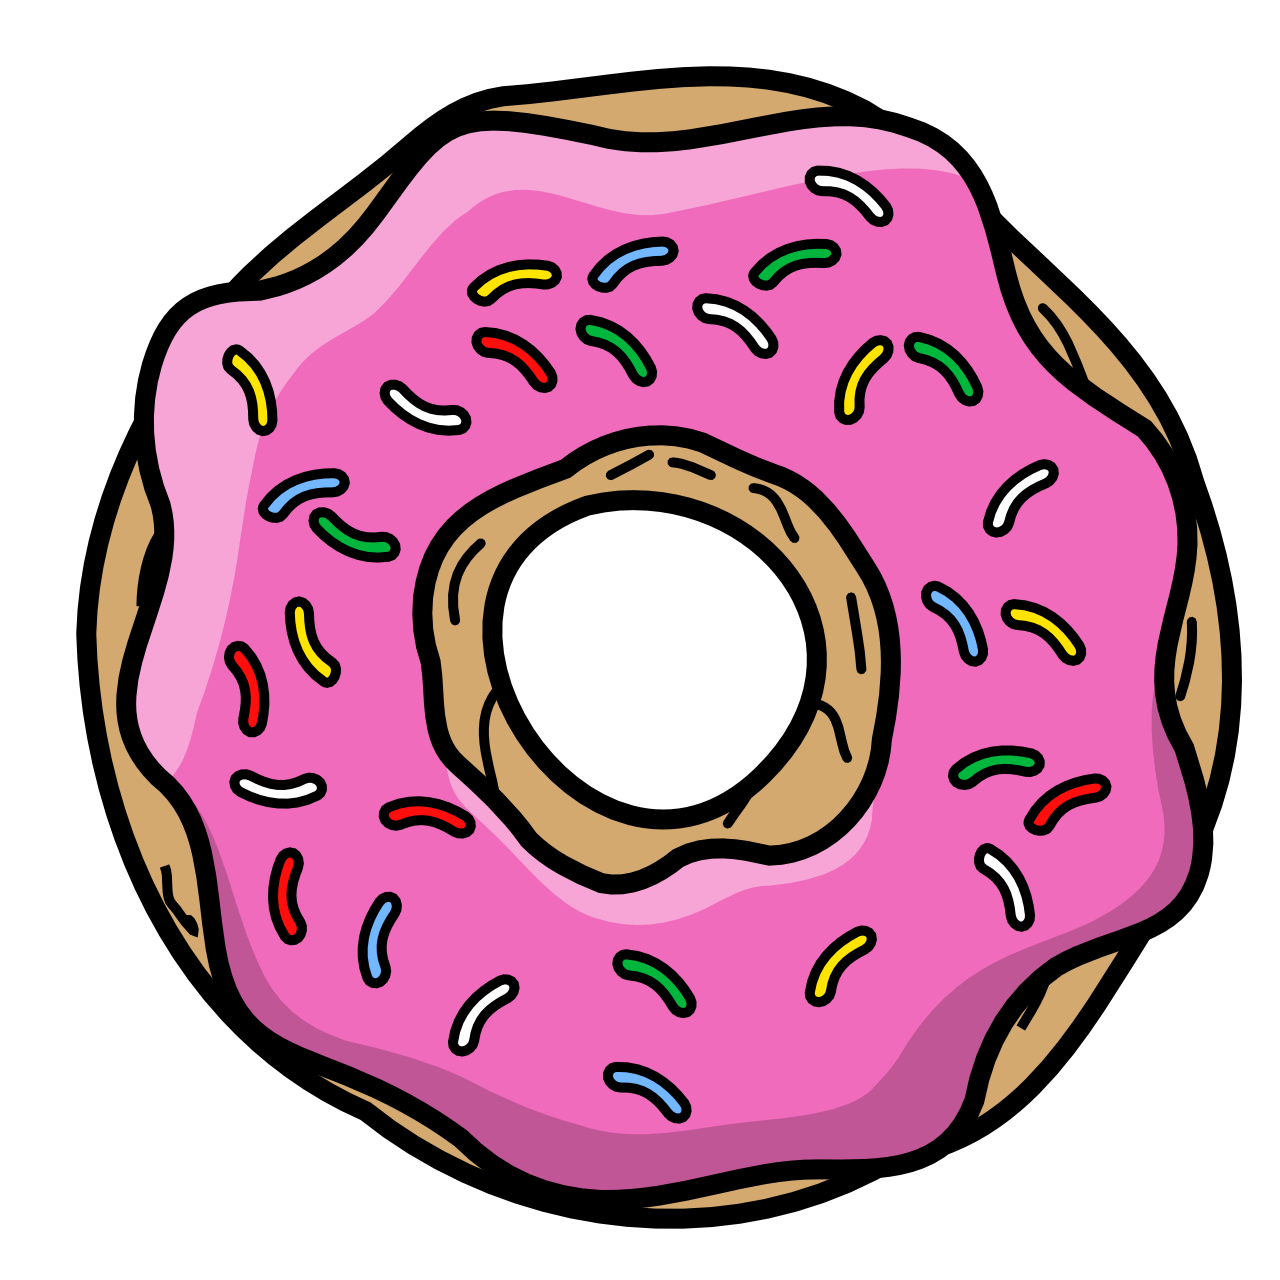 Donuts clipart donut shop. Png image purepng free